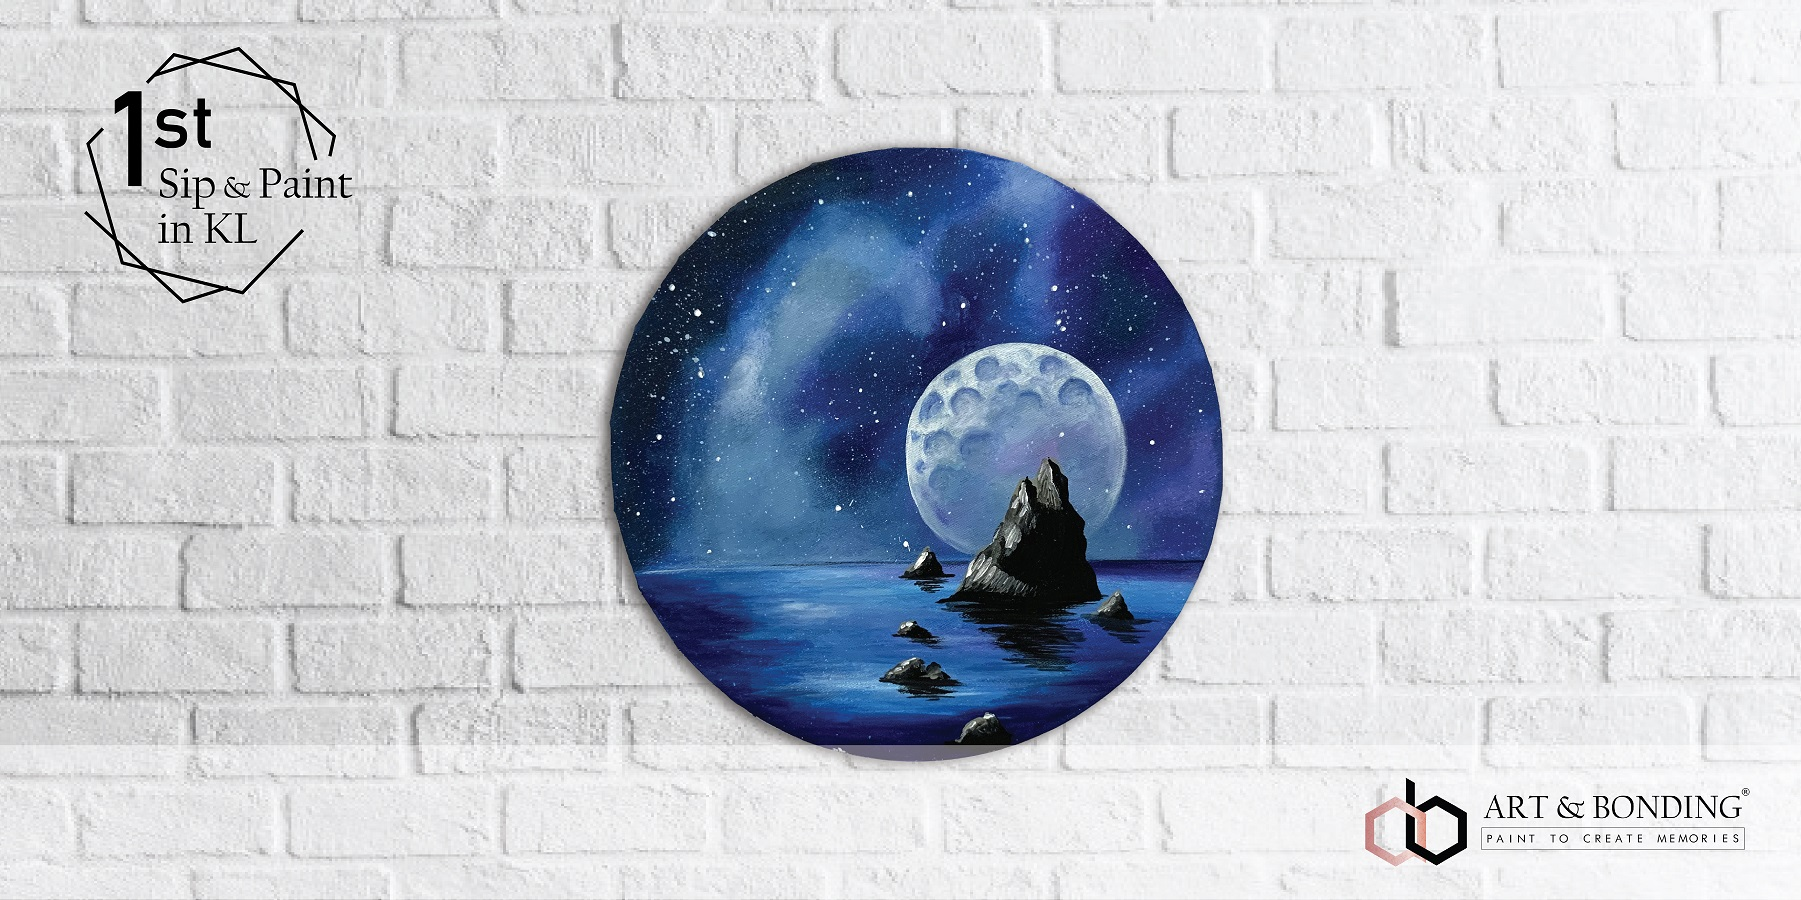 galaxy-reflection-space-acrylic-painting-art-class-kl-wine-things-to-do-02